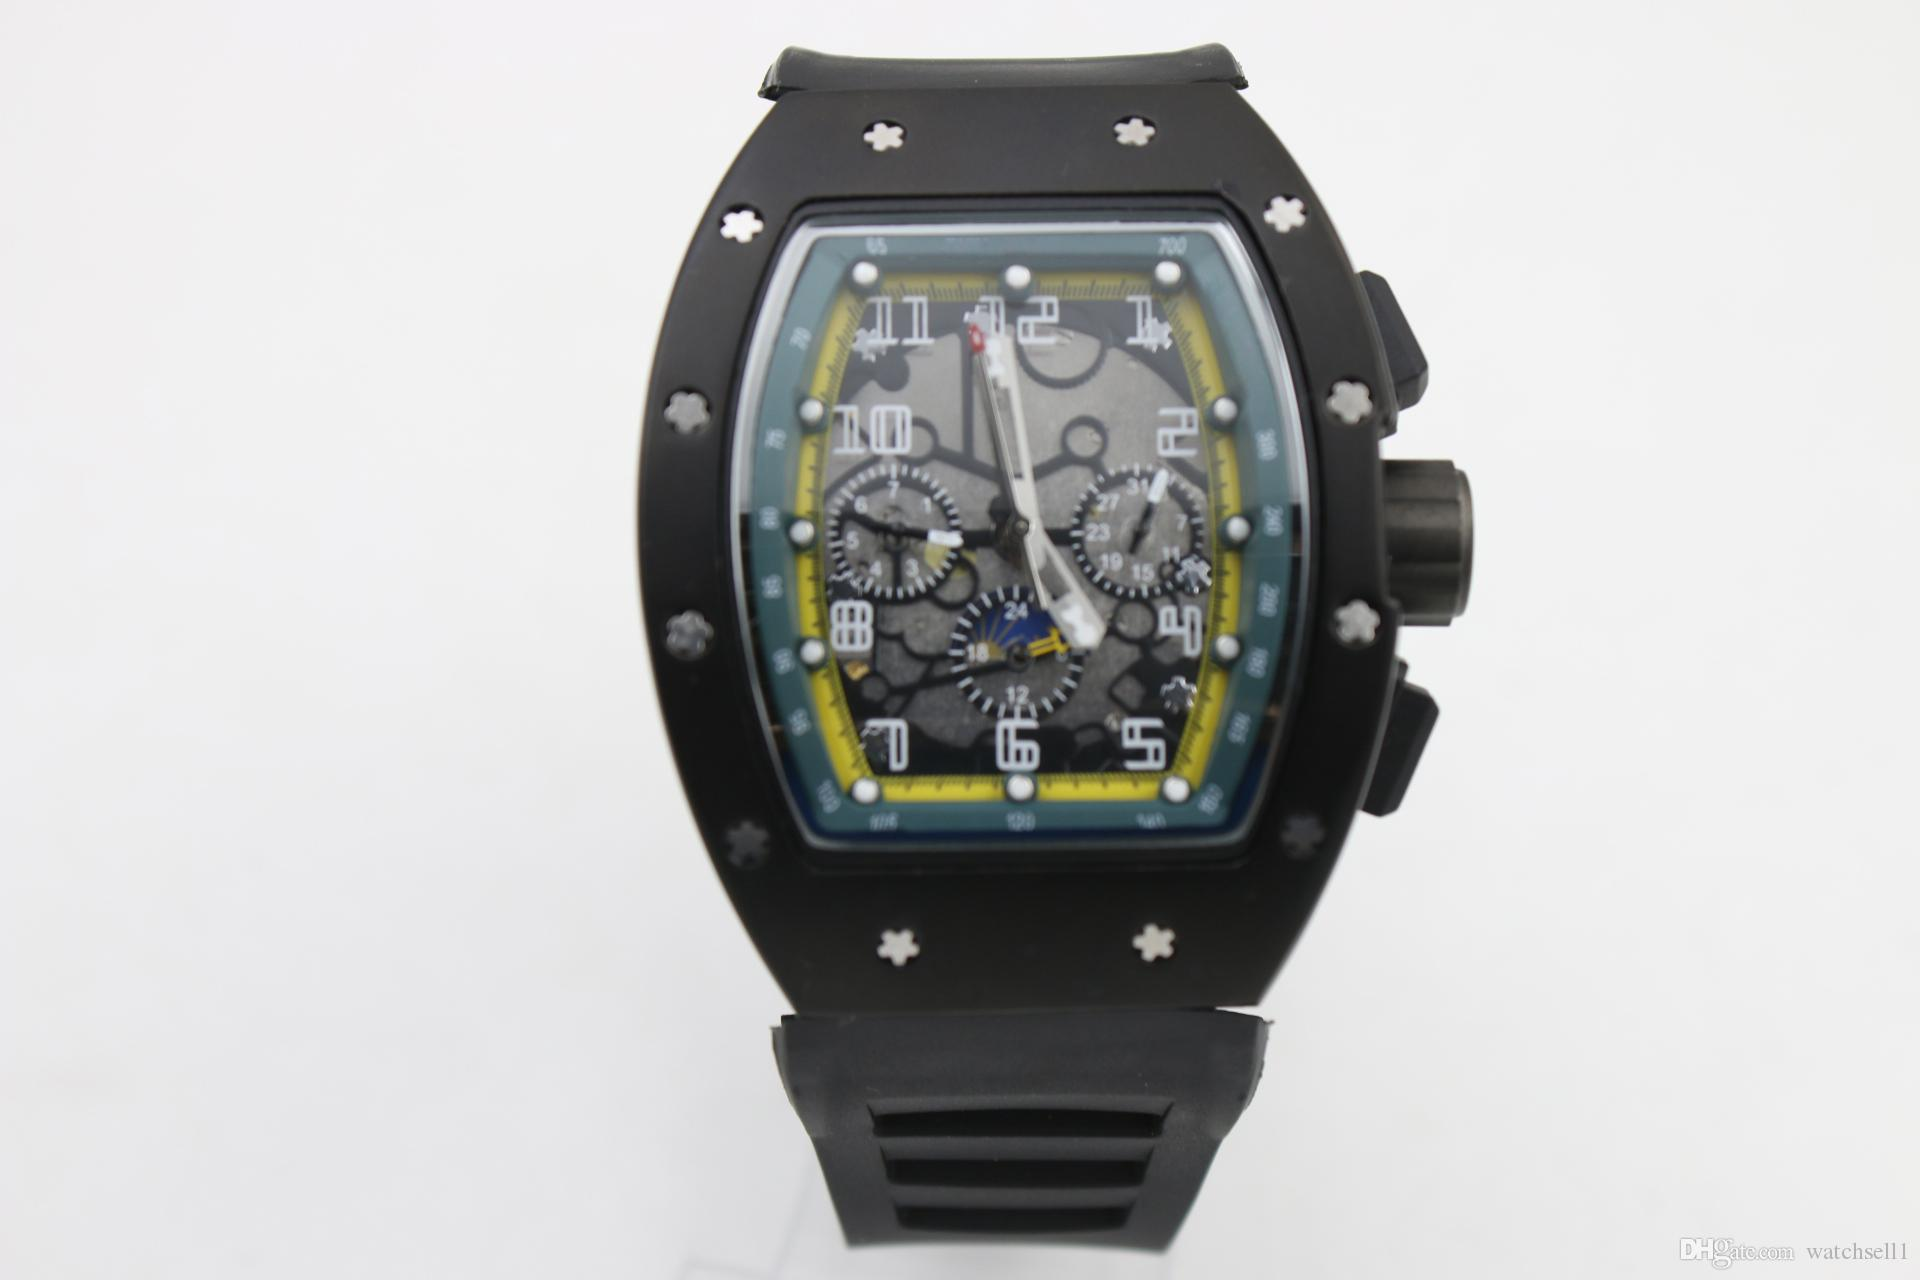 watchsell Man good 011 watch rubber black case green shadow 6 needle Automatic machinery watch